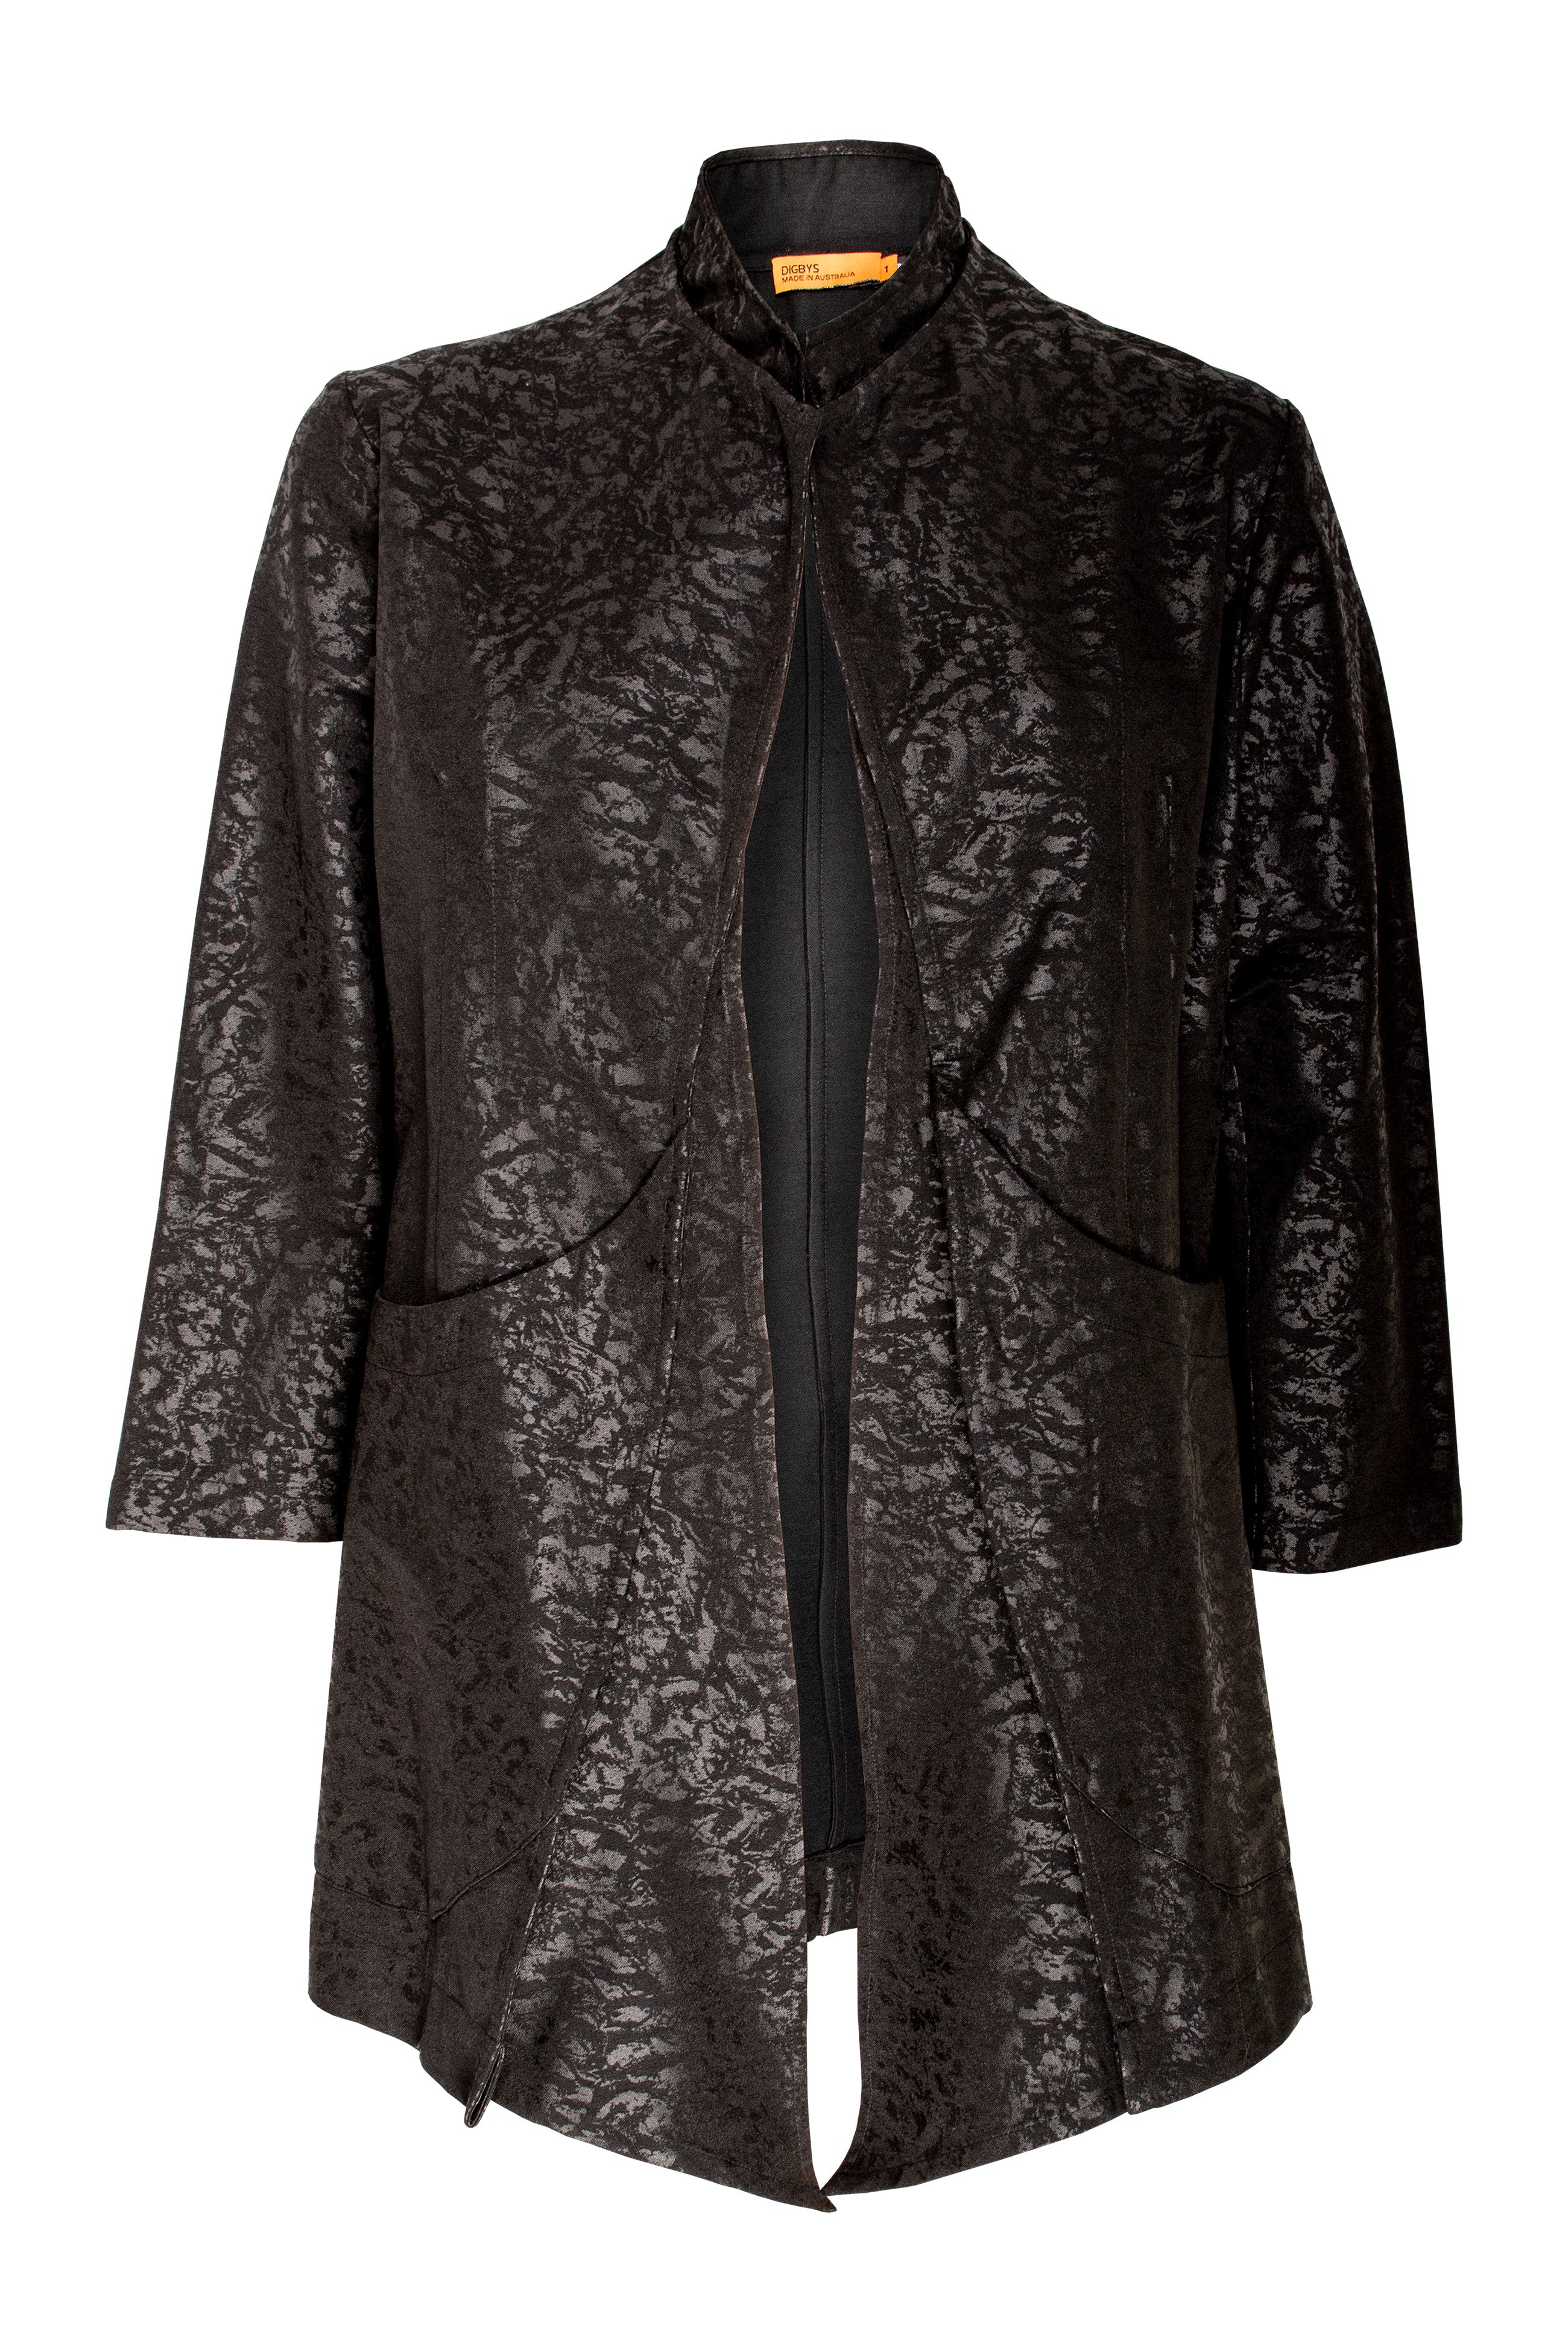 High Shine Black Printed Long Jacket made in Australia